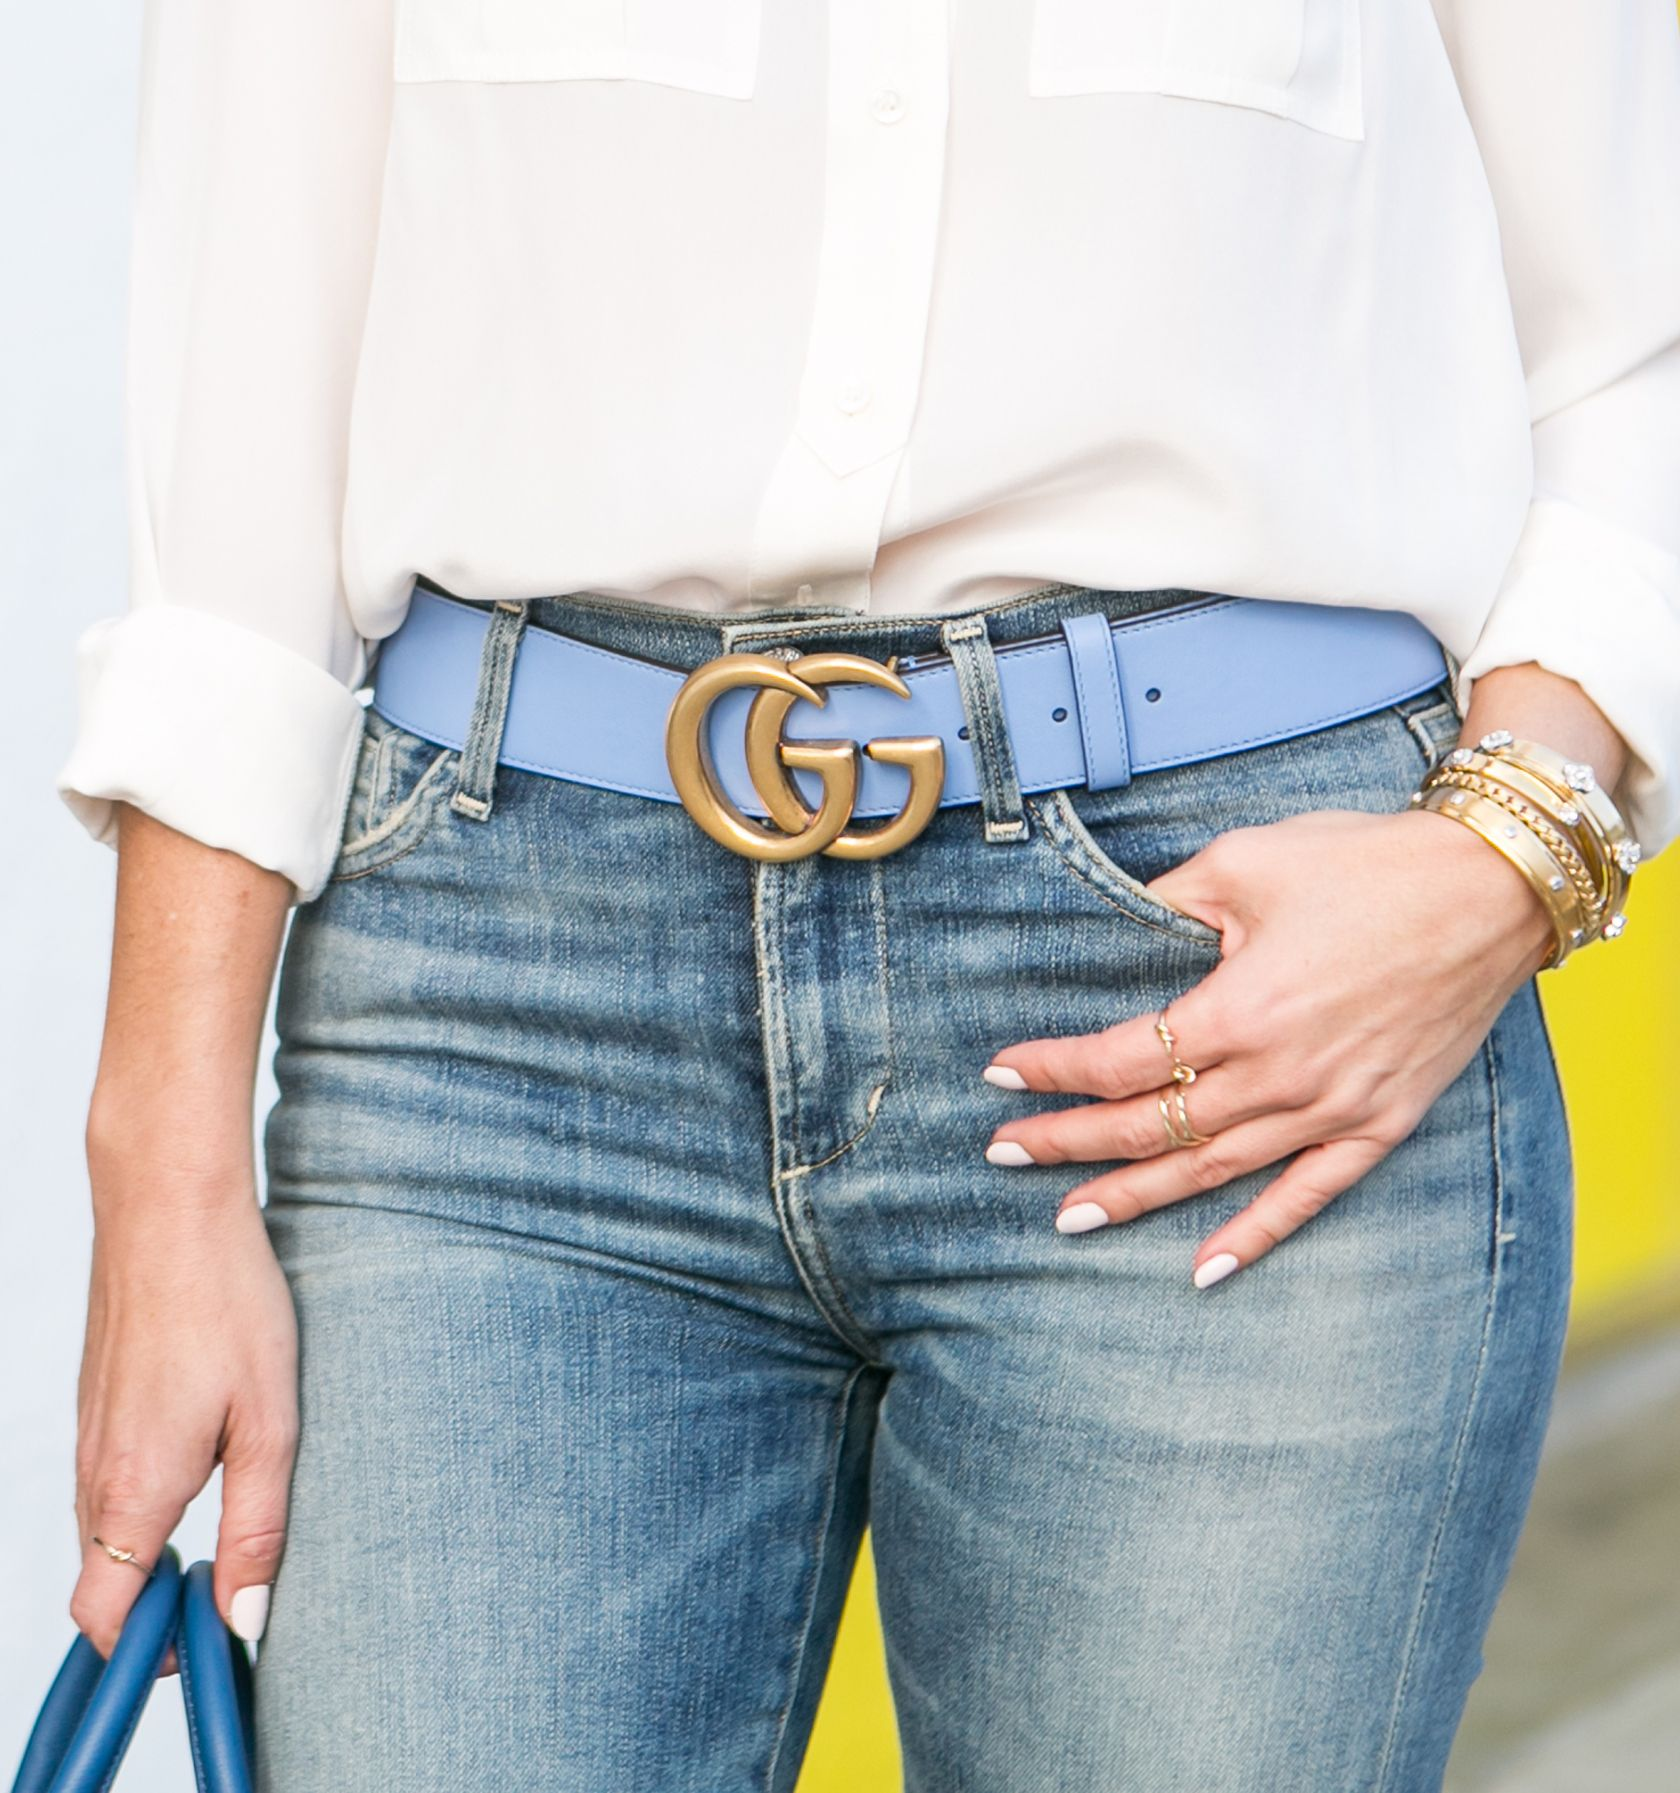 cb0c10d9ff5 Sydne Style reviews Gucci GG buckle belt in blue leather for sizing guide